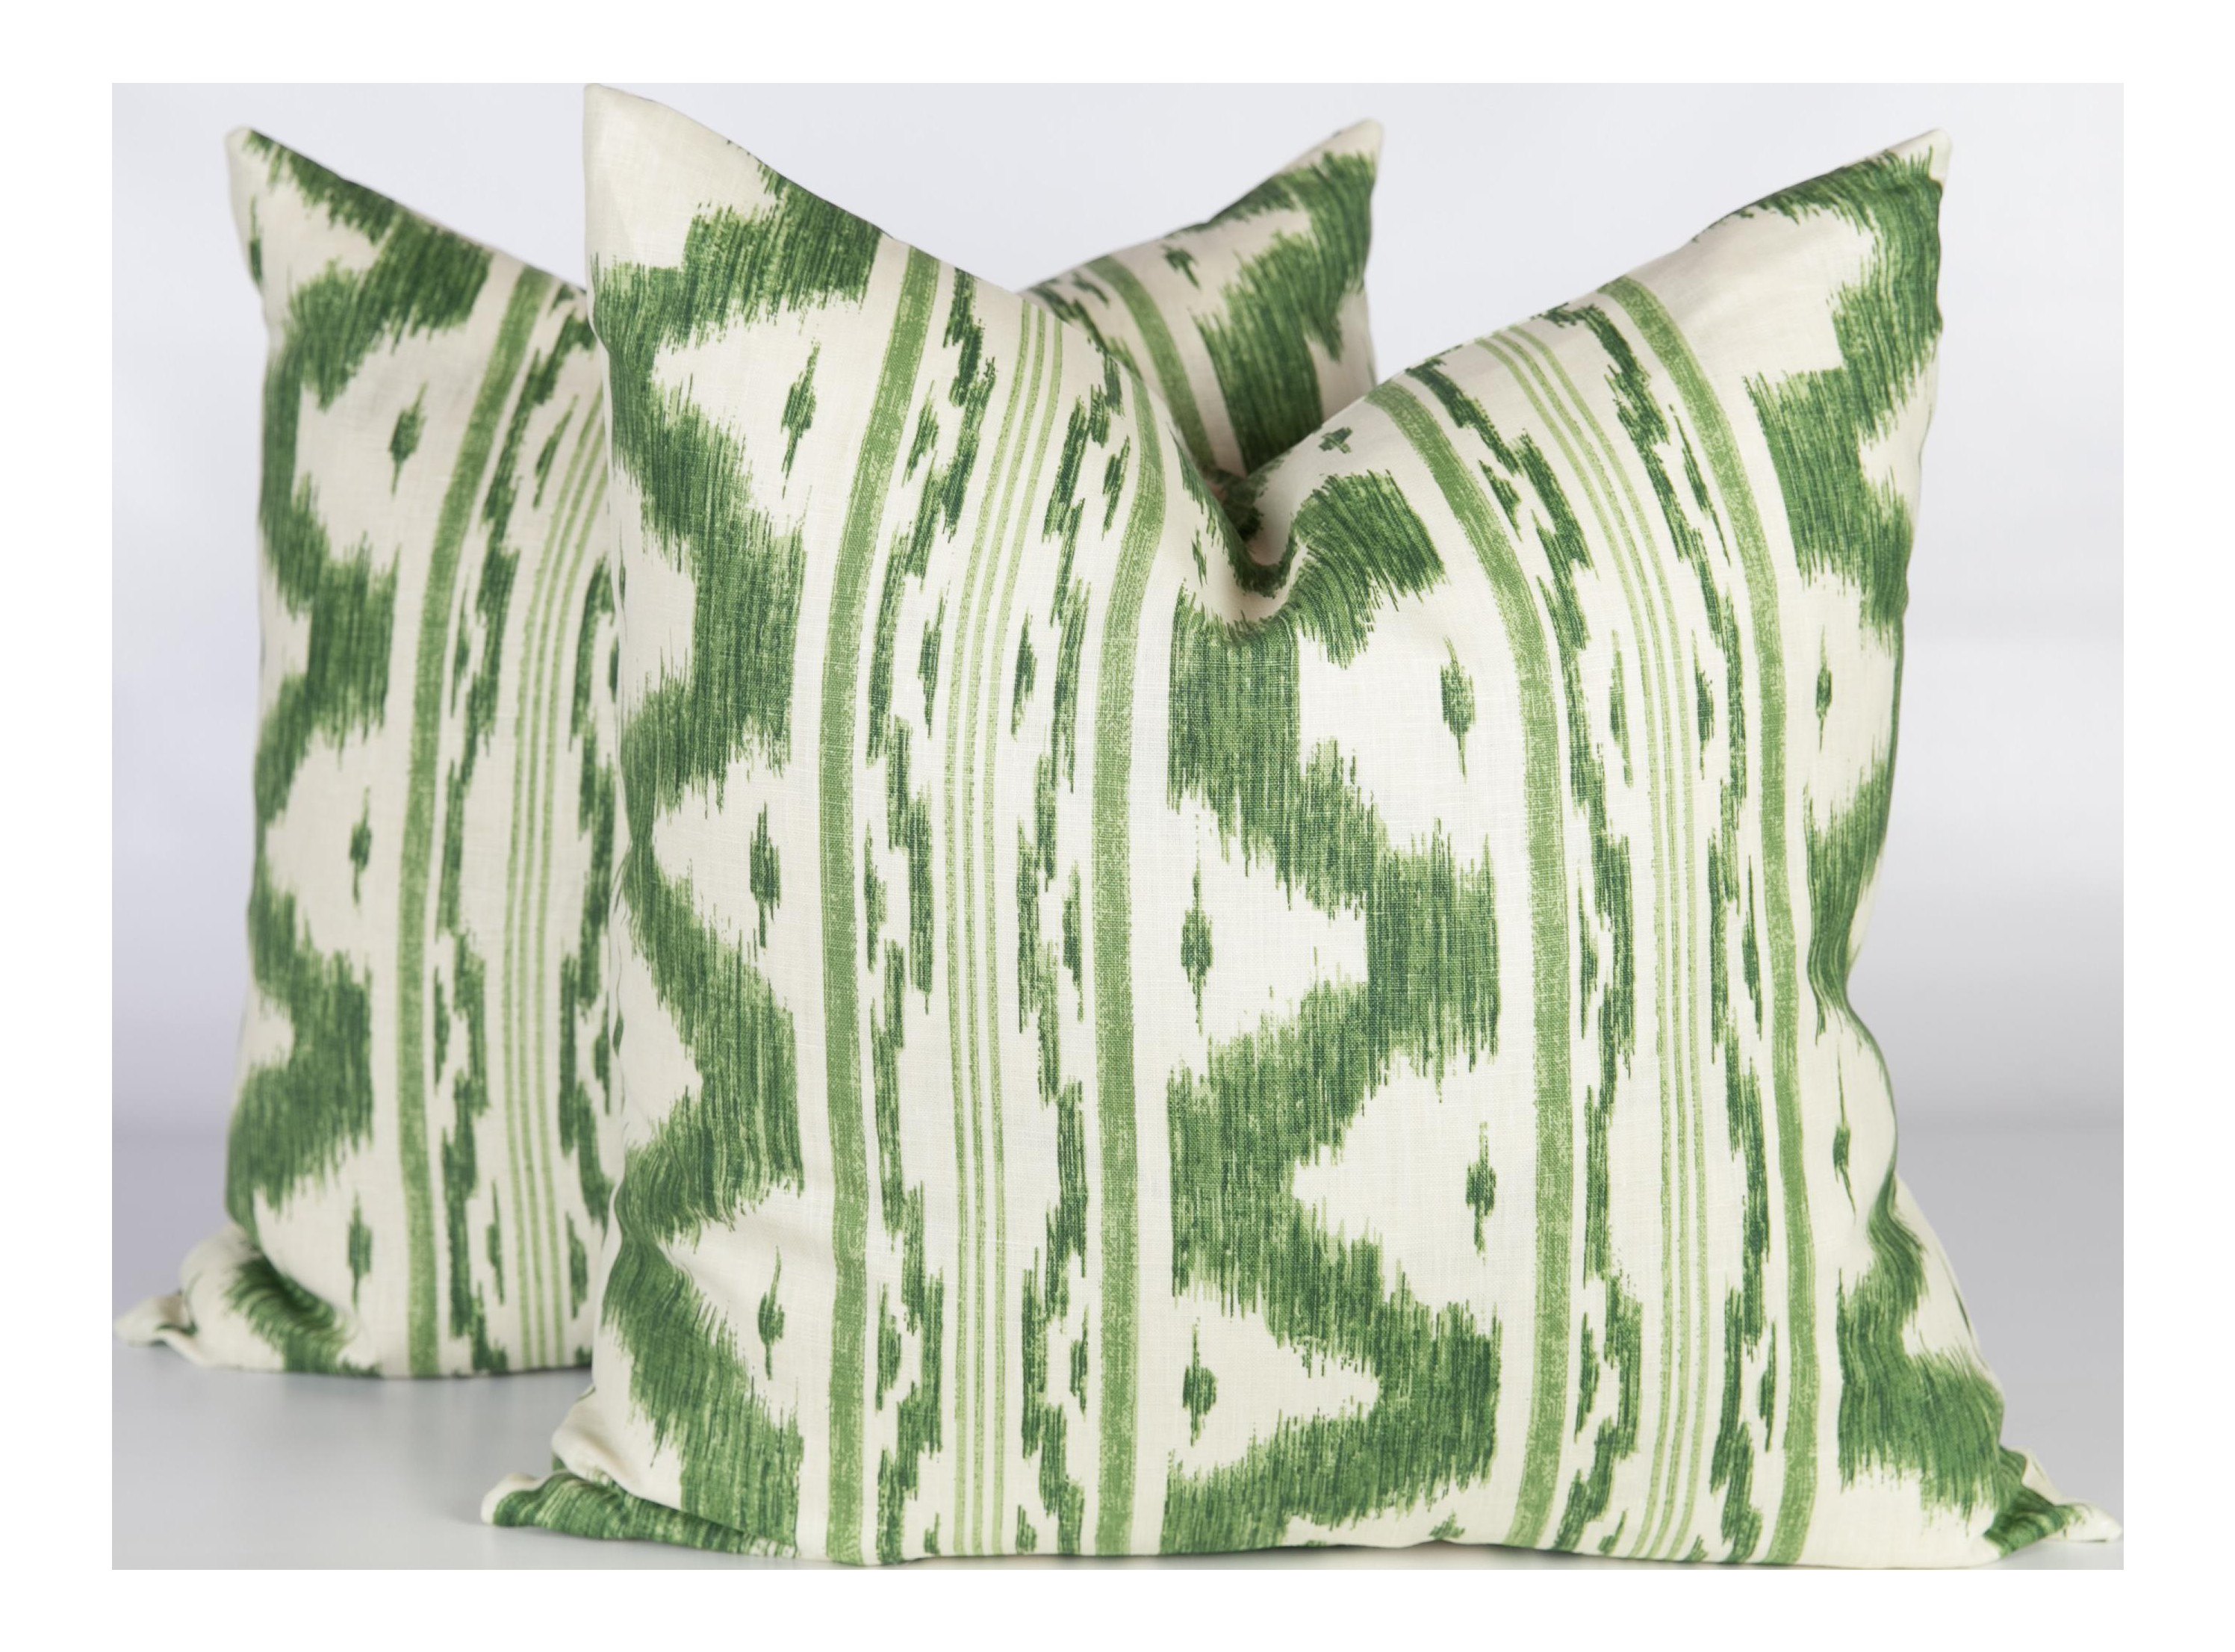 lime green glass vase of dark green pillows new cool vases flower vase coloring page pages throughout dark green pillows elegant ivory and green linen ikat pillows a pair of dark green pillows